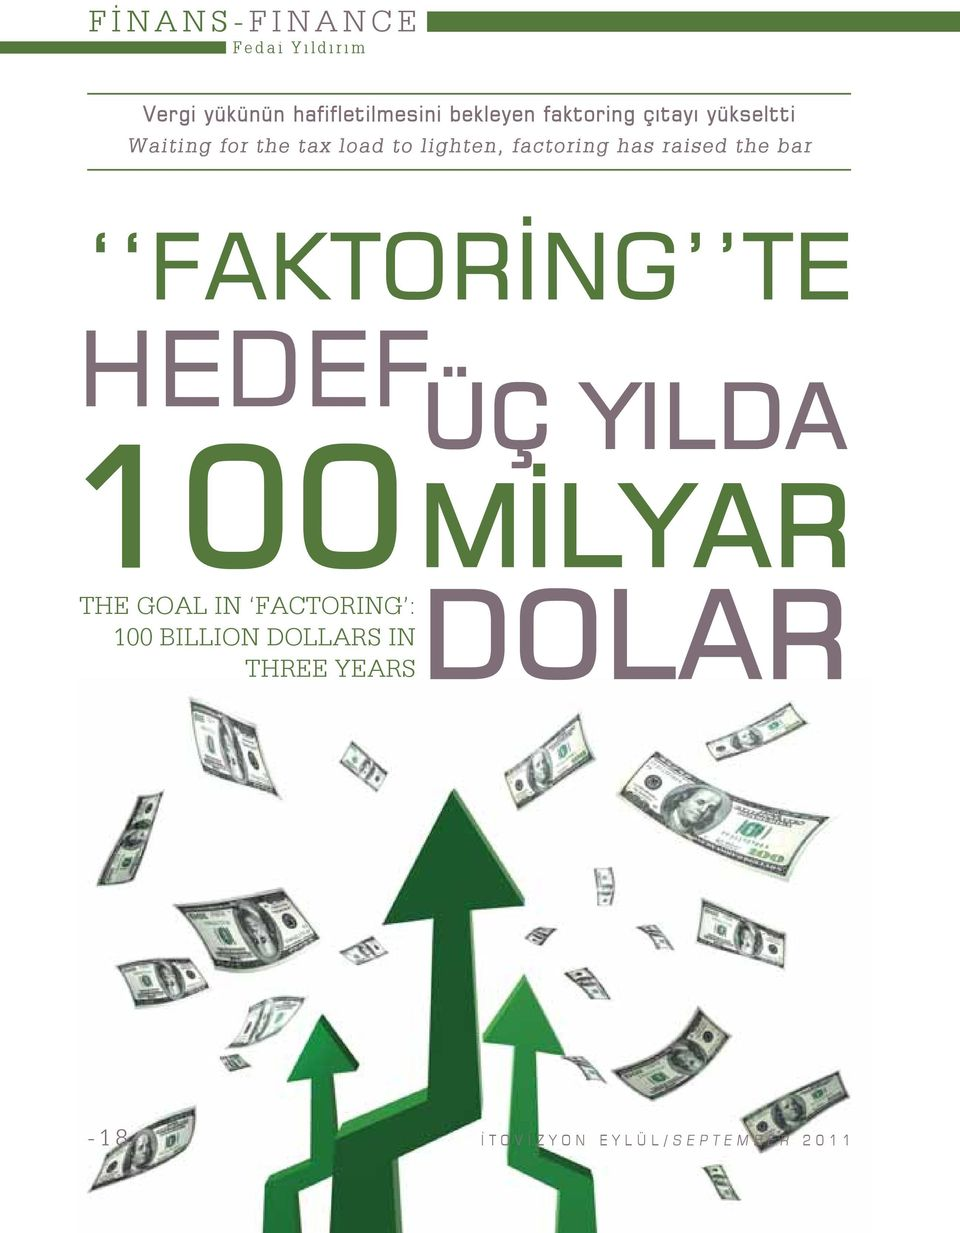 raised the bar FAKTORİNG TE HEDEF 100 THE GOAL IN FACTORING : 100 BILLION